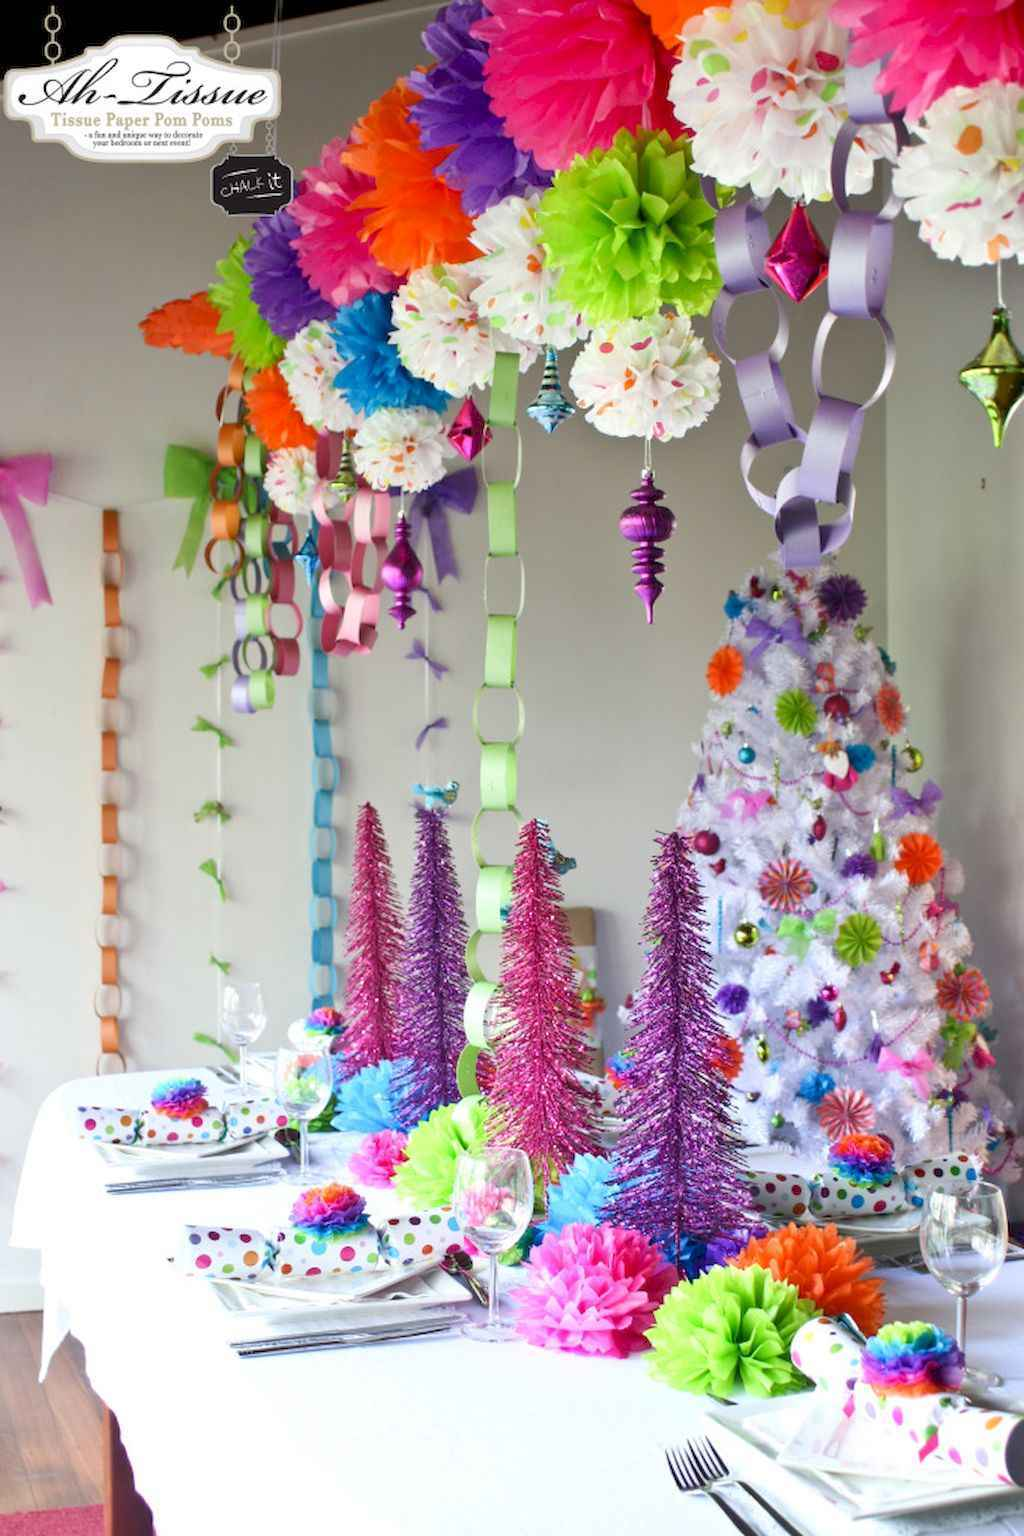 25 elegant christmas party table decorations ideas 14 for Fancy xmas decorations